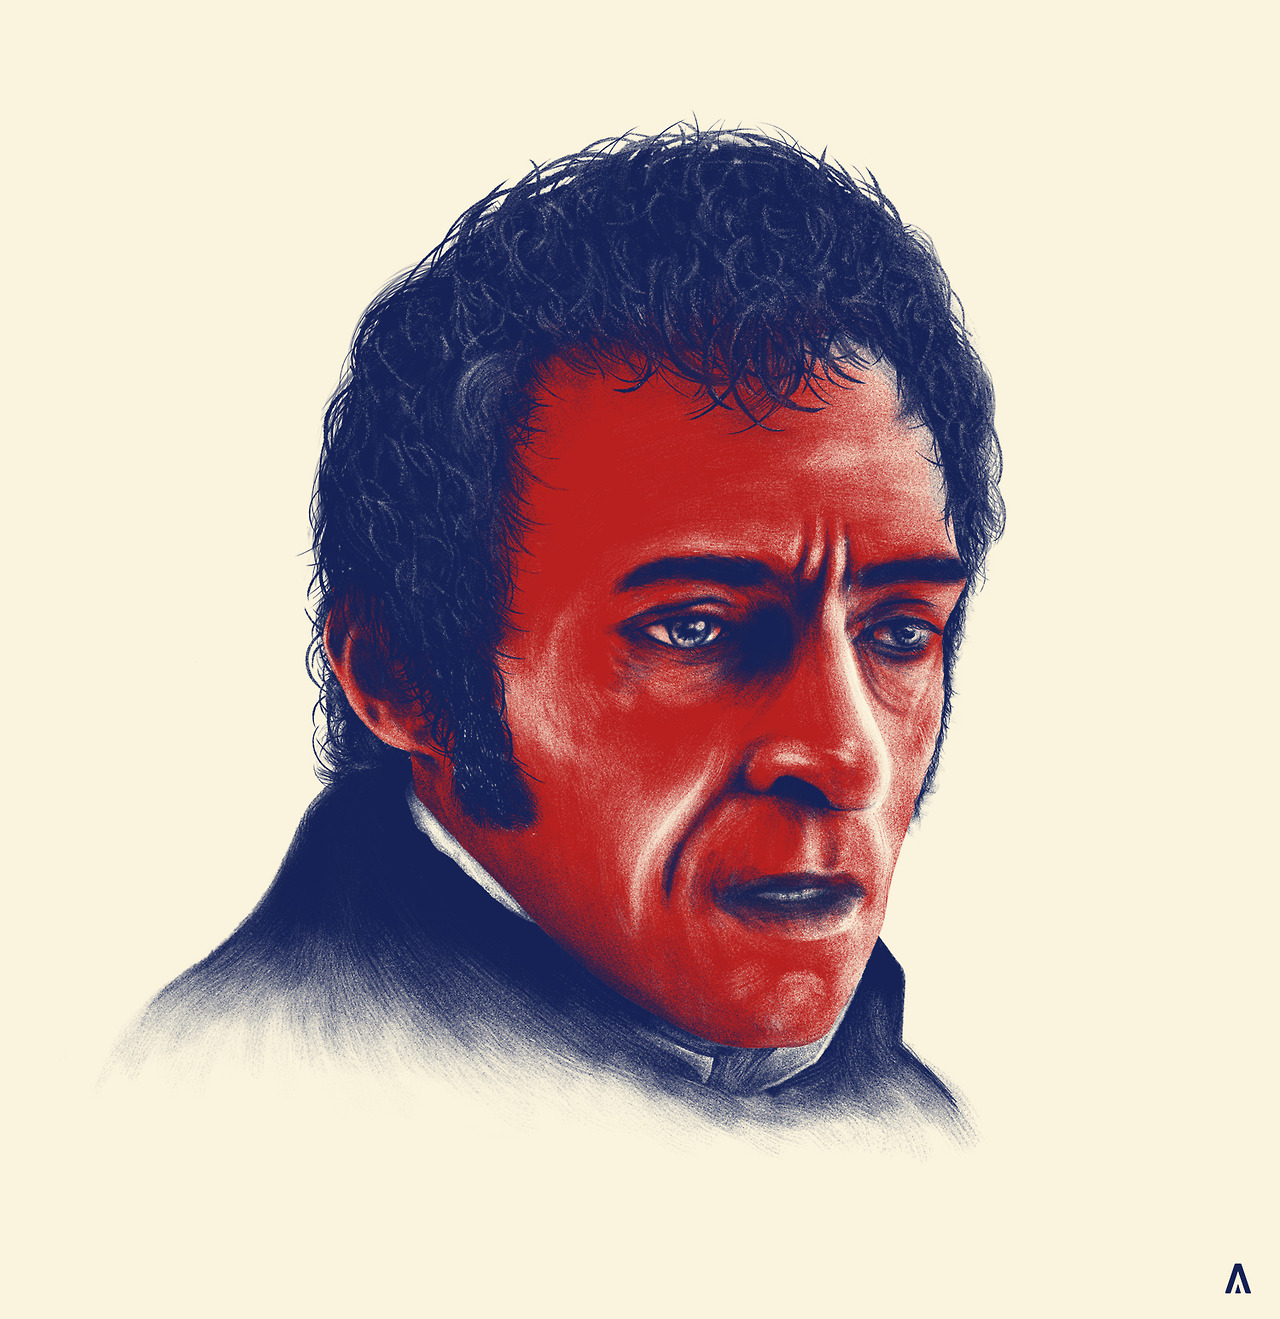 '24601'   My illustration of Hugh Jackman as Jean ValJean from the movie musical 'Les Miserables'. This is the first in a planned series of conceptual portraits of characters from movies, tv shows, bands etc!    Trialled some new techniques with this one, they were not working at all, and the I had a revolutionary break through which now will change the way I work which is a fantastic thing! Hope you all enjoy!    More to come, Remember to hit me up on  Facebook ,  Twitter  for other updates too! Thanks